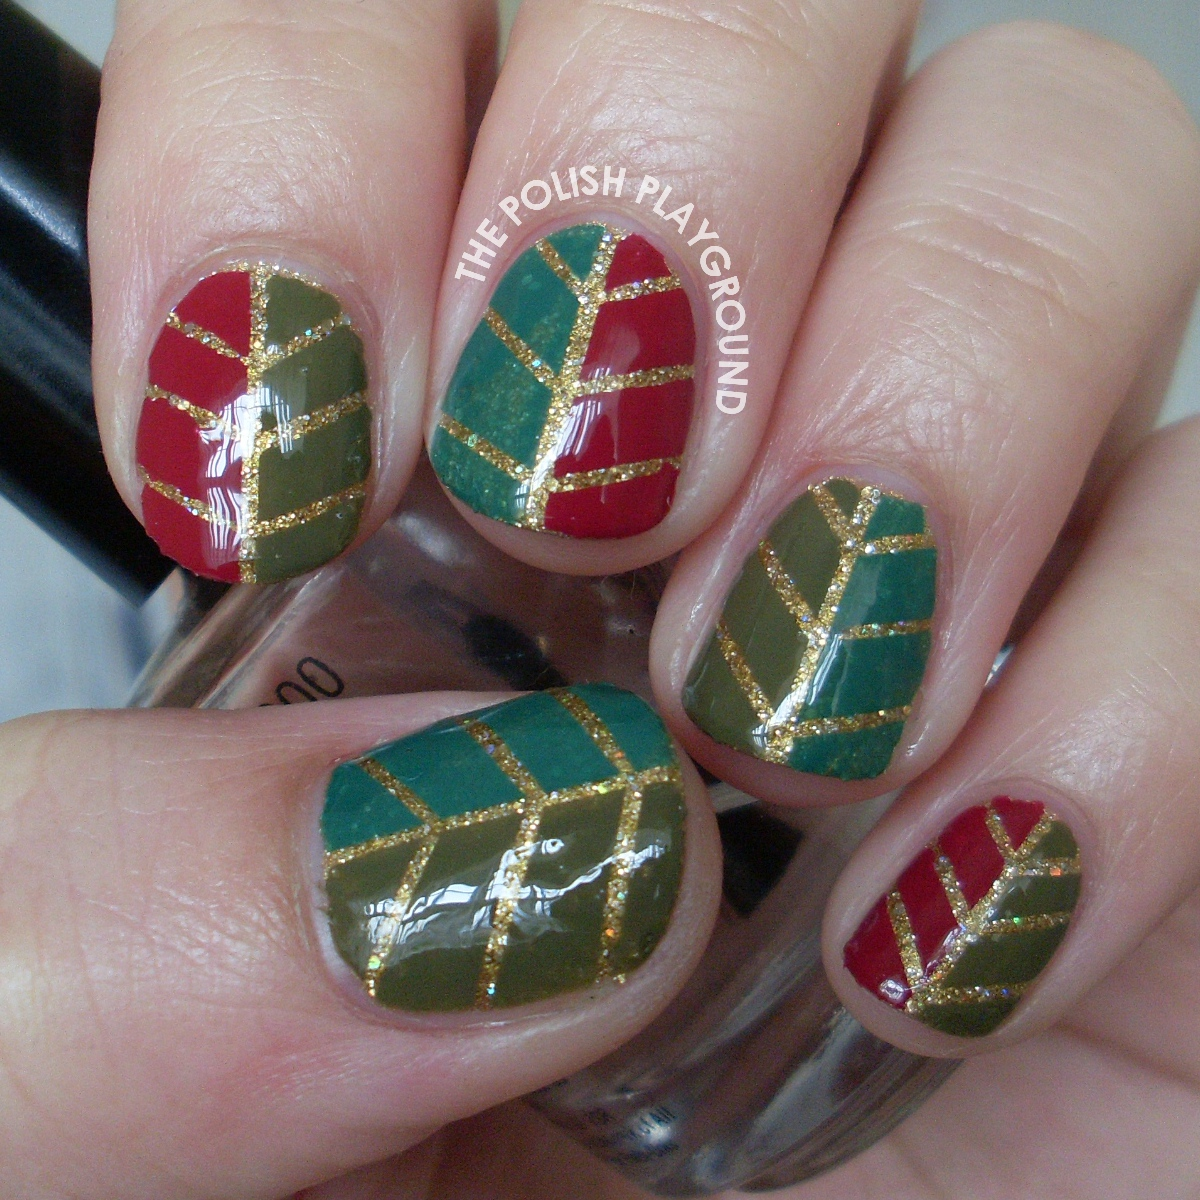 Thatleanne Firey Autumn Leaves Nail Art: The Polish Playground: Glittery Autumn Leaf Nail Art